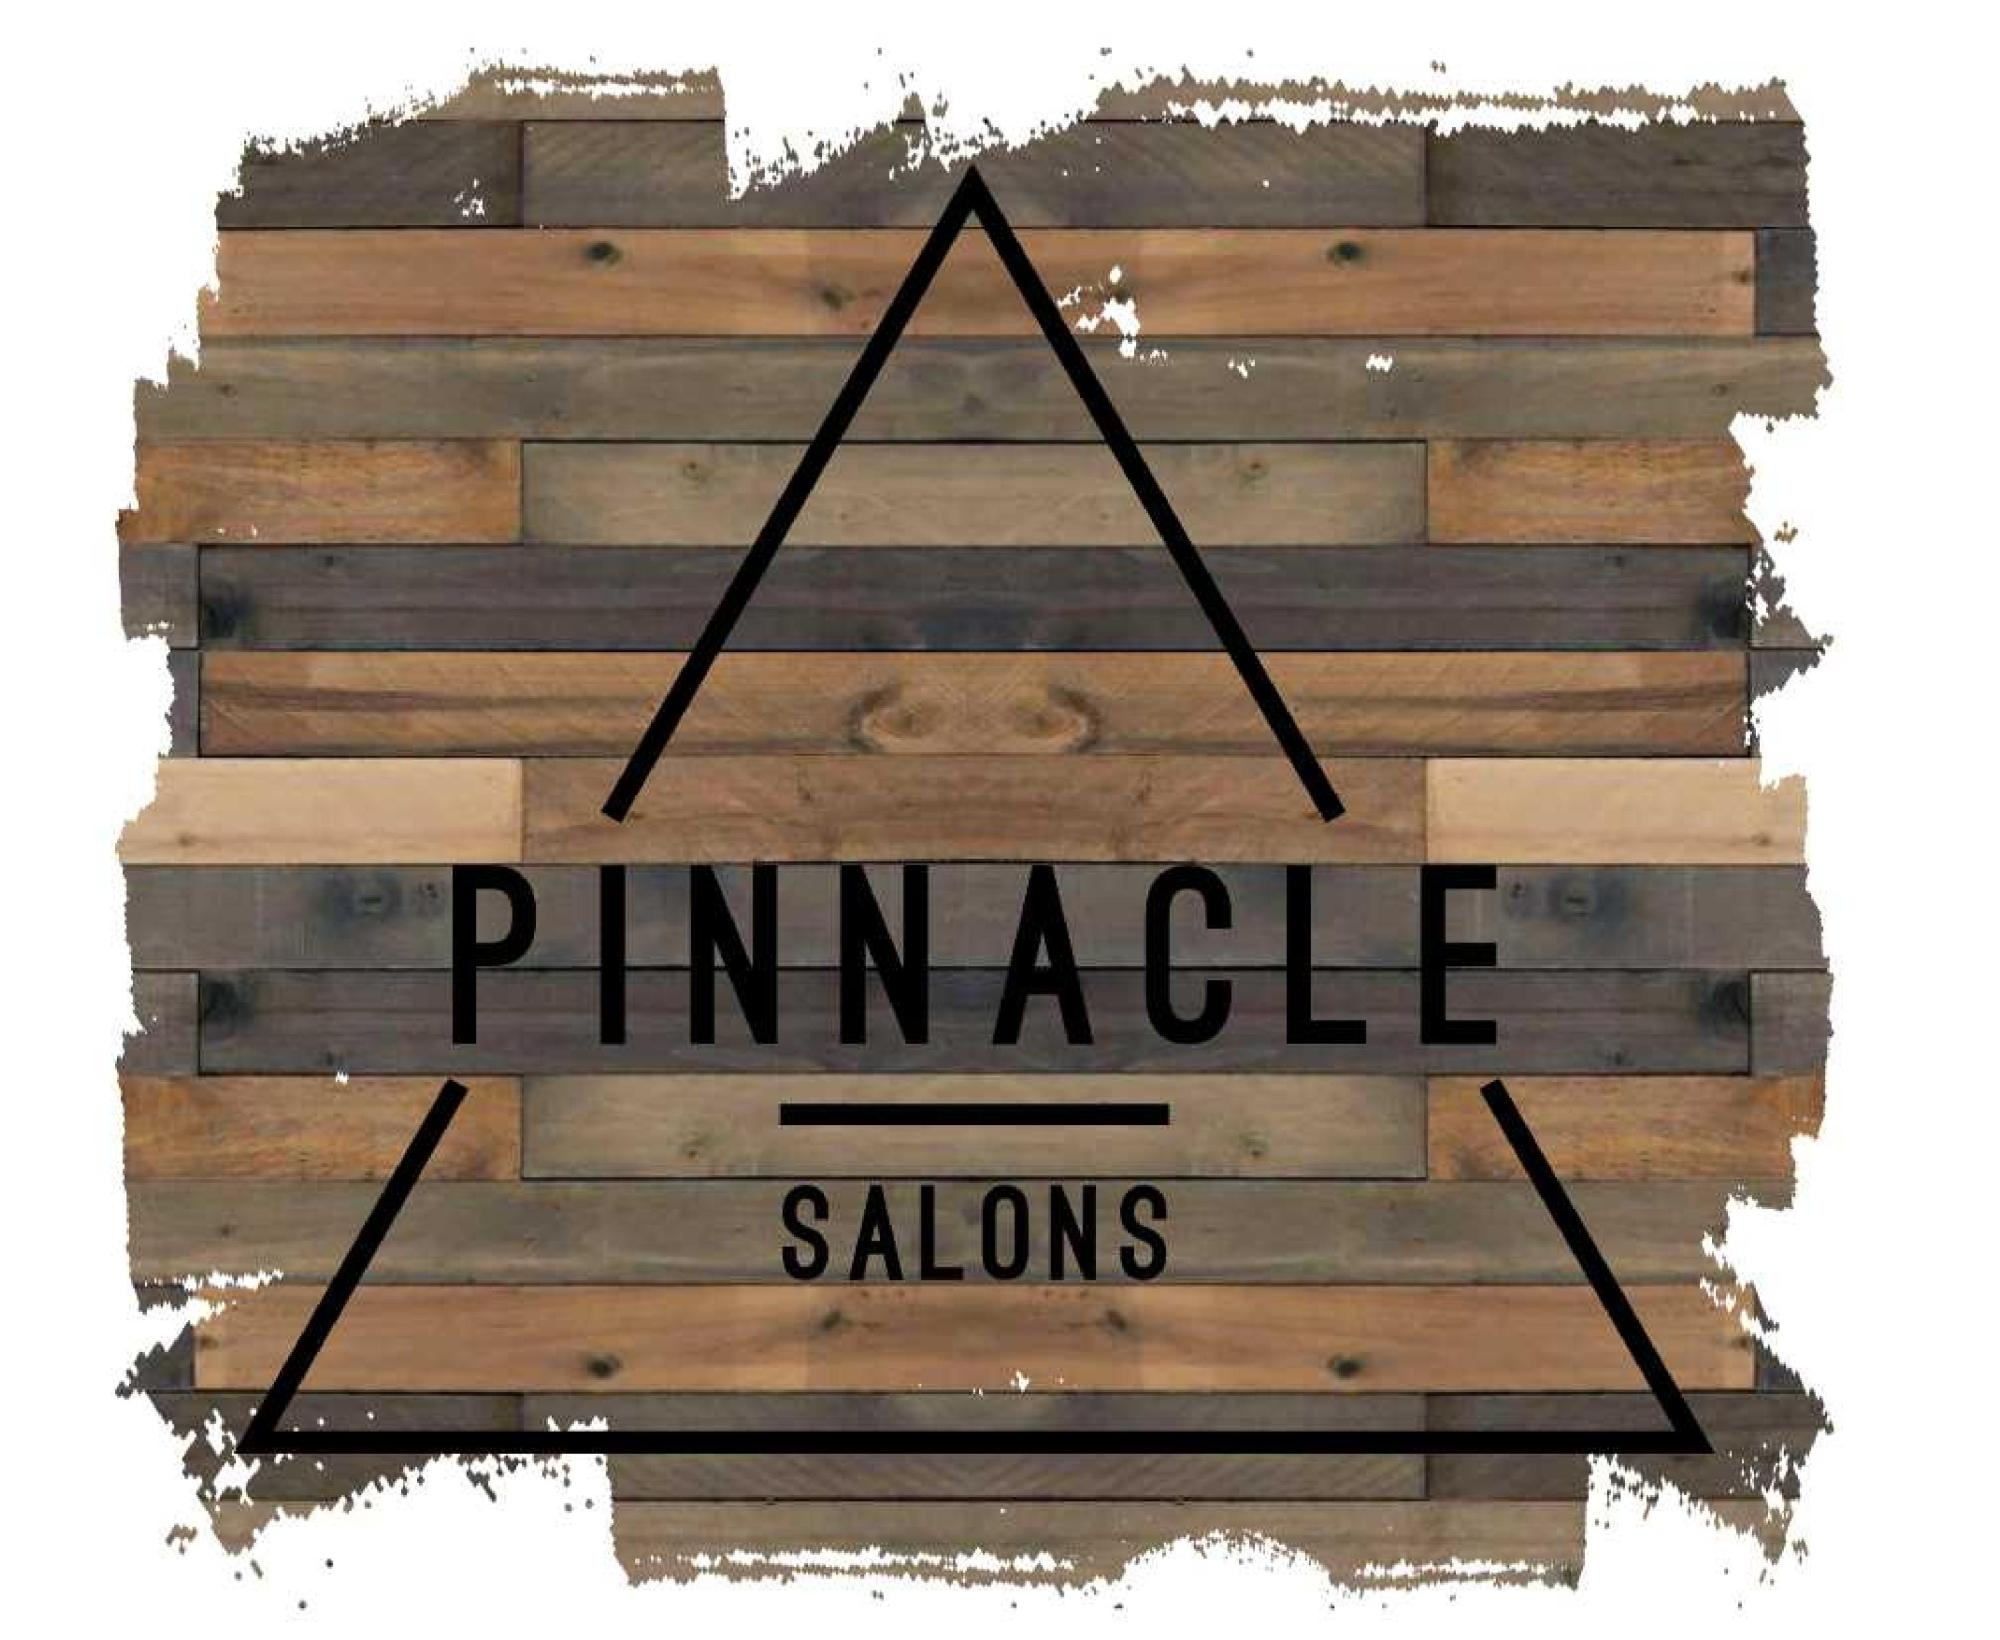 Pinnacle_Salons_Interior_Sign.pdf.jpg